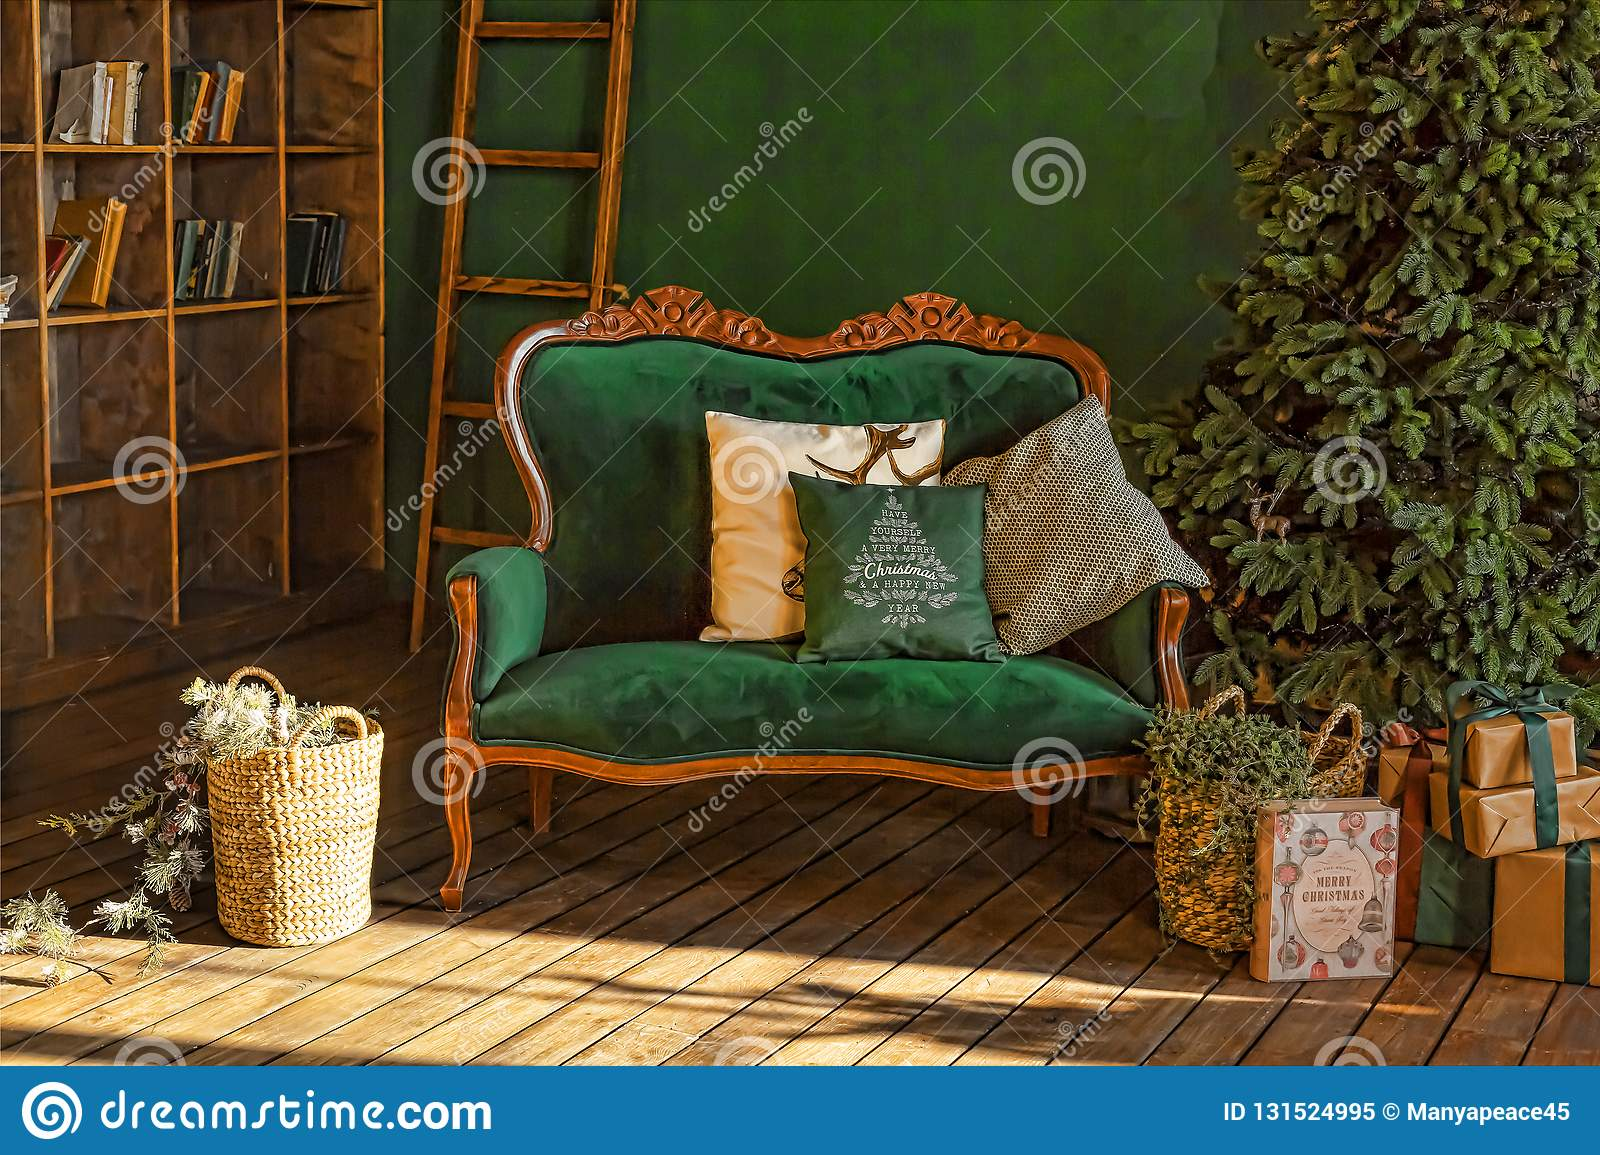 5 016 Royal Sofa Photos Free Royalty Free Stock Photos From Dreamstime